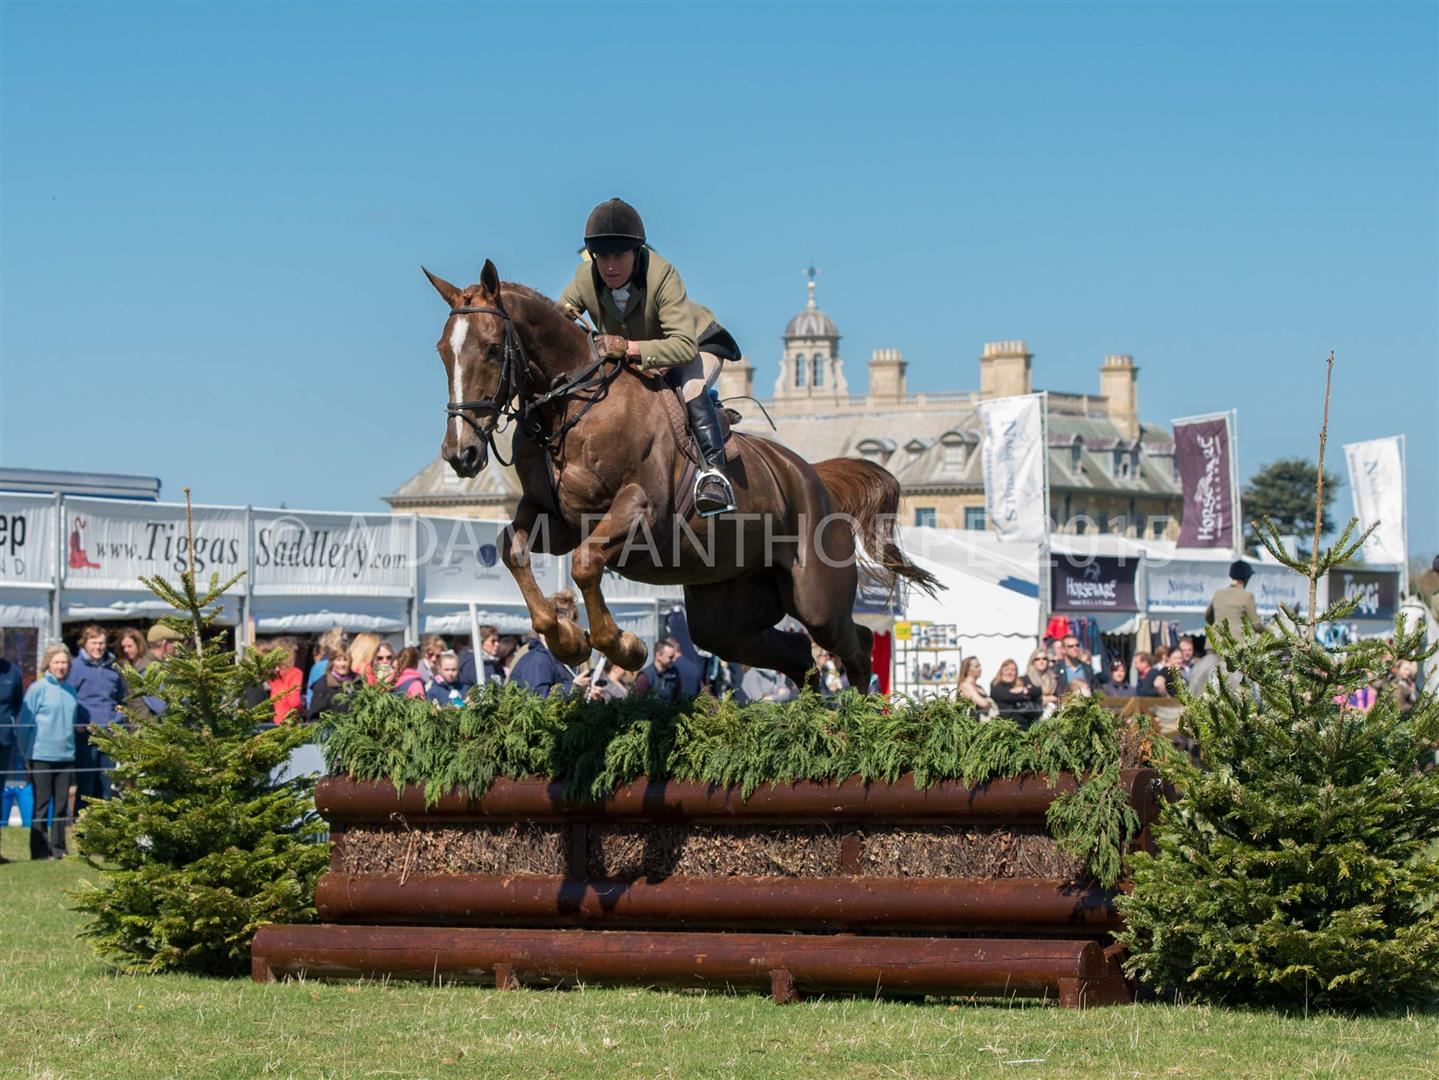 DSC 4400 Large - Skill, Precision and Bravery on display at this years' Belton Horse Trials